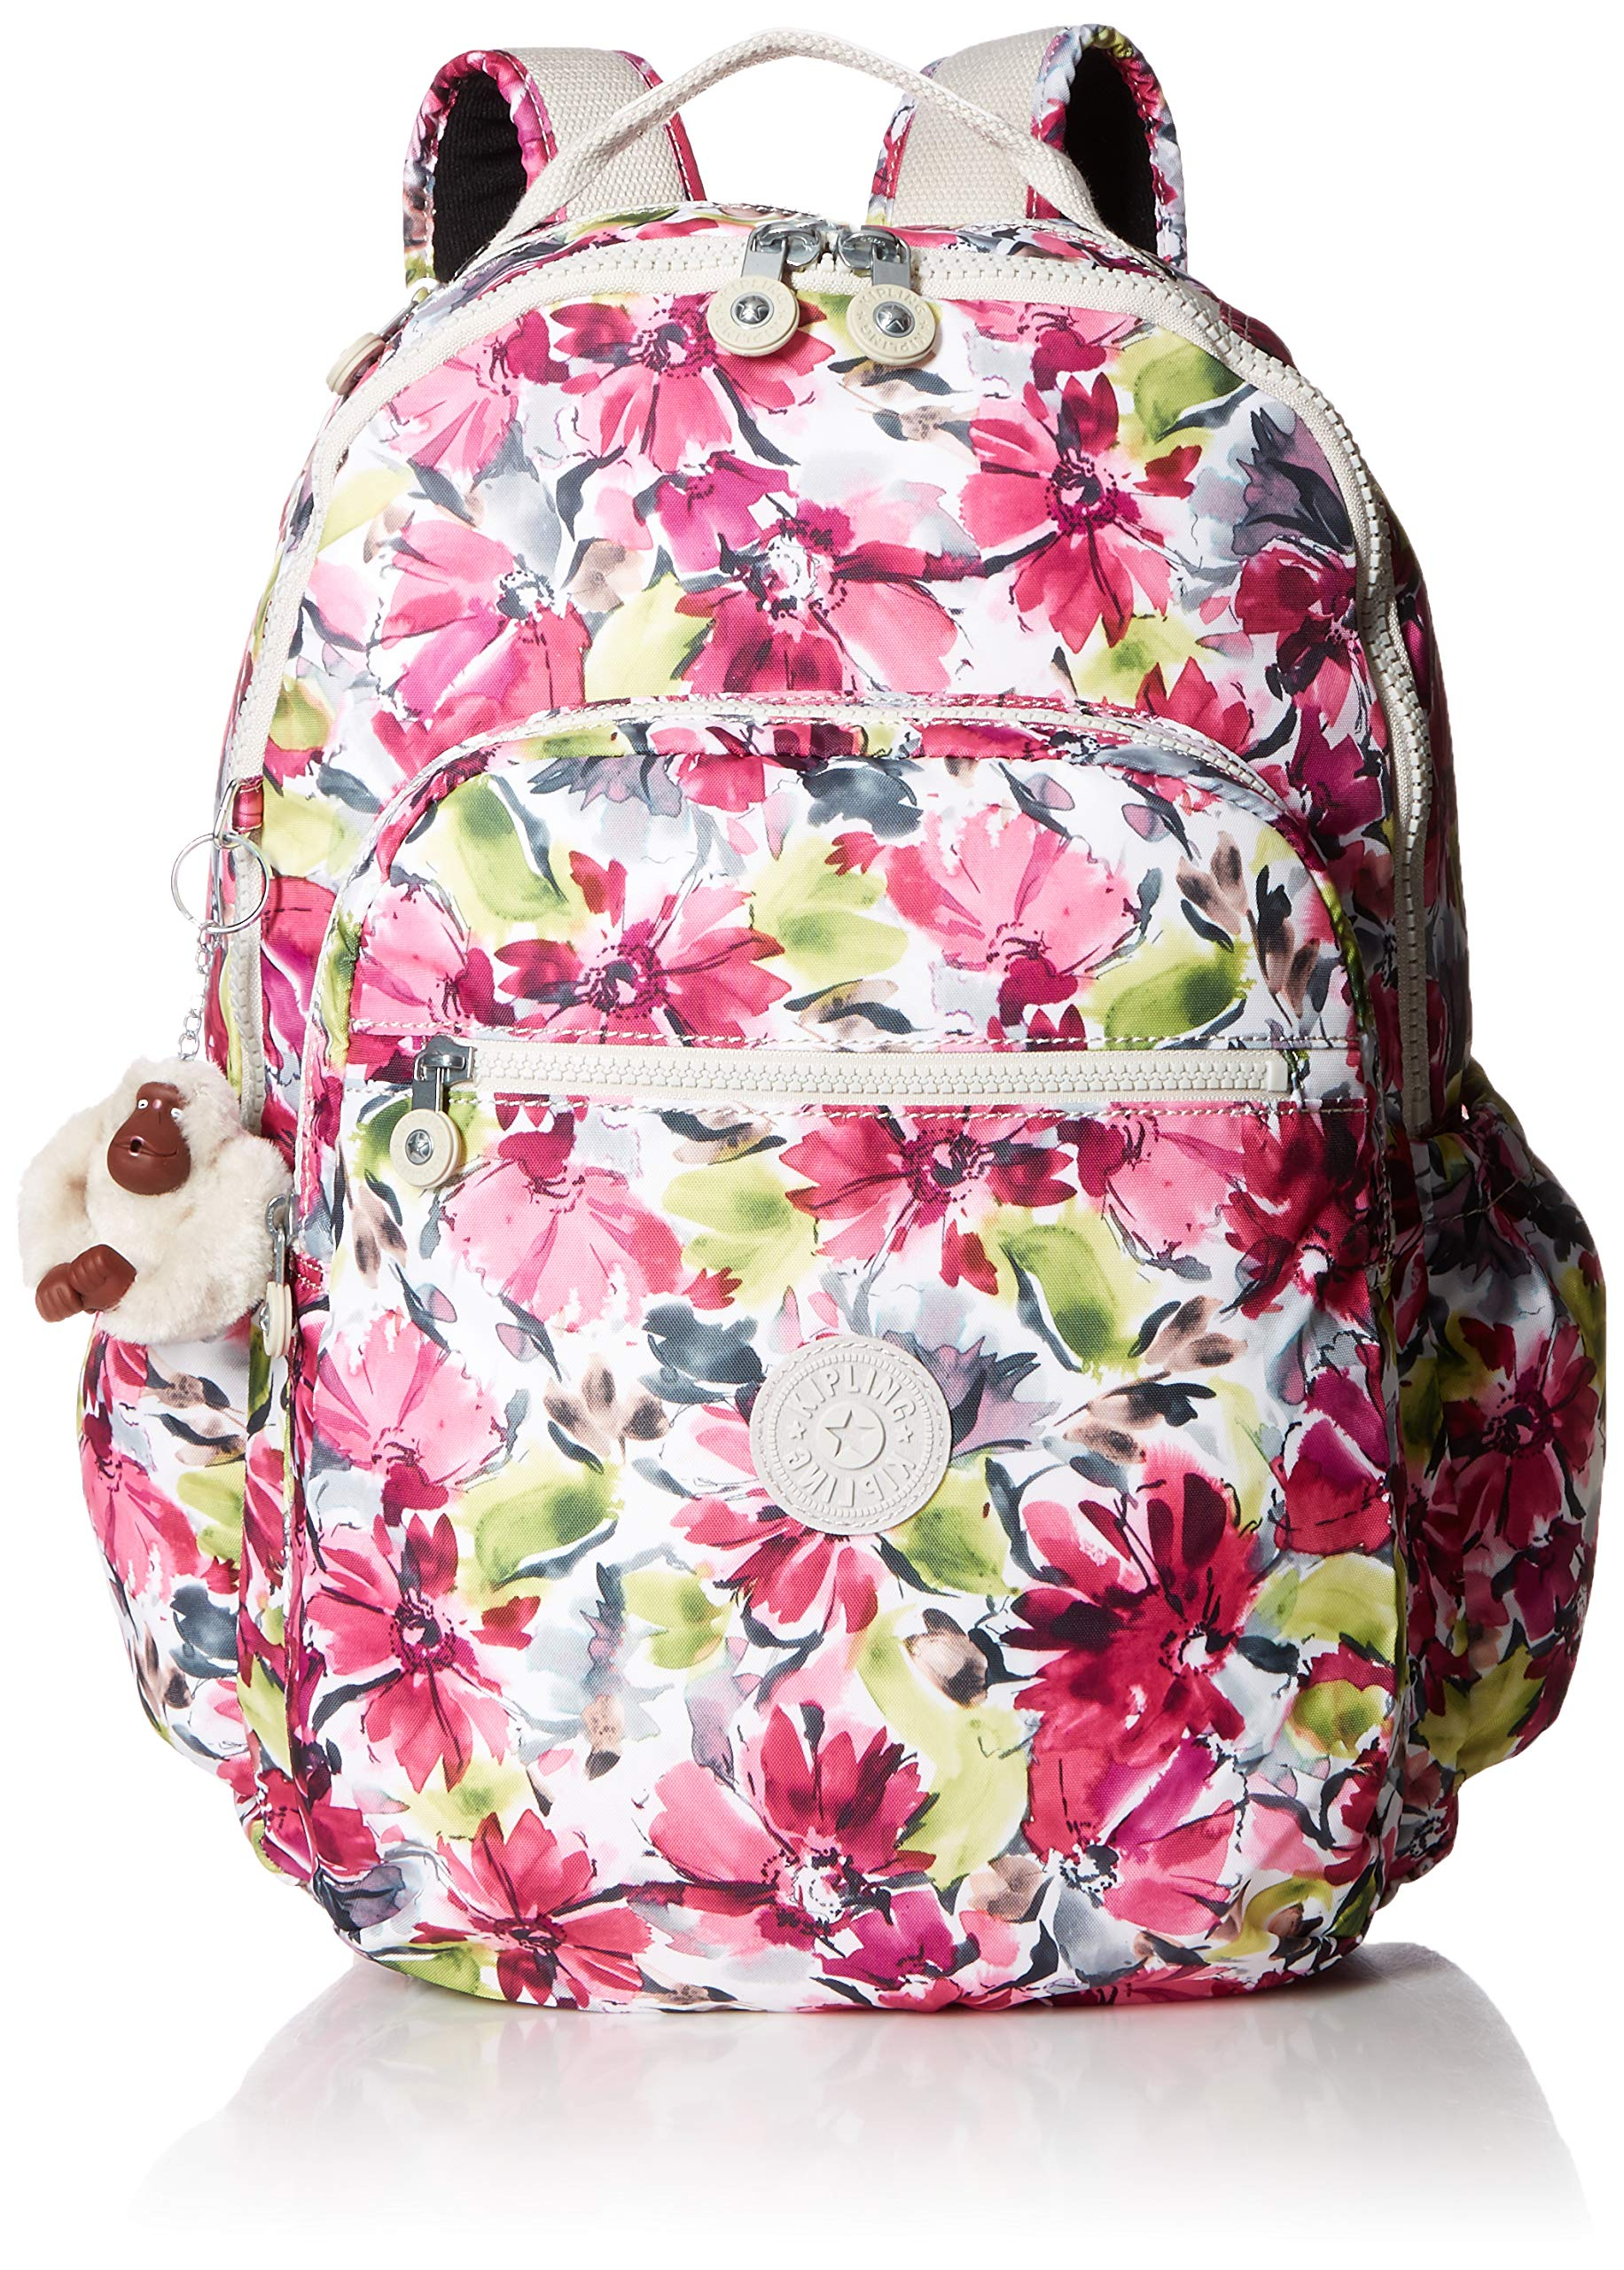 Kipling Seoul Go Laptop, Padded, Adjustable Backpack Straps, Zip Closure, Blushing Posies